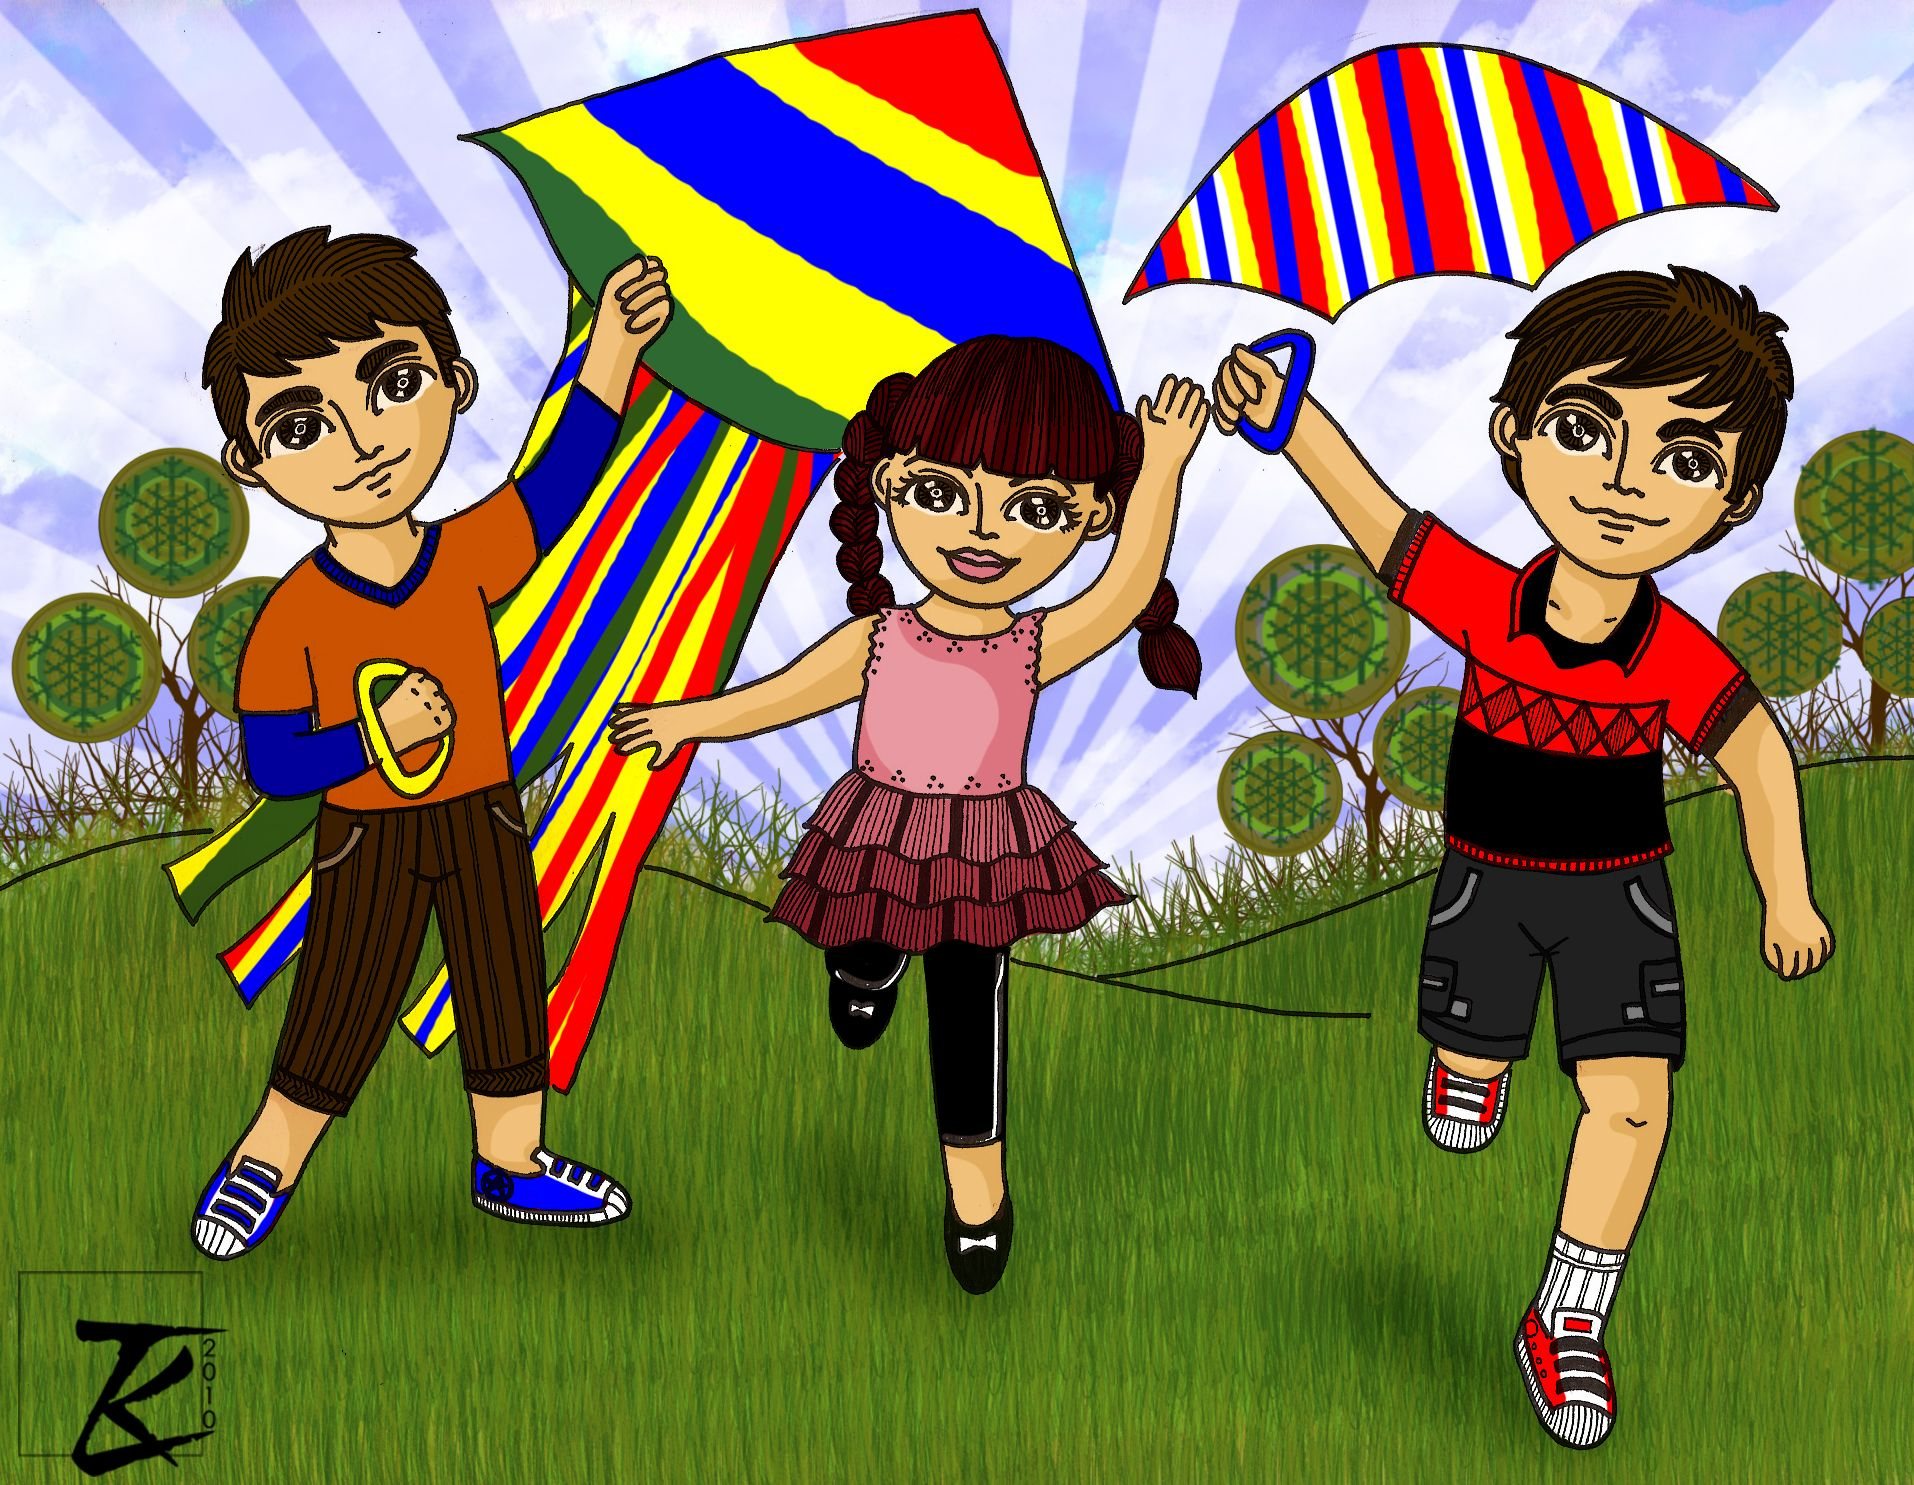 Hey there fellow talentado! pictures of children flying kites